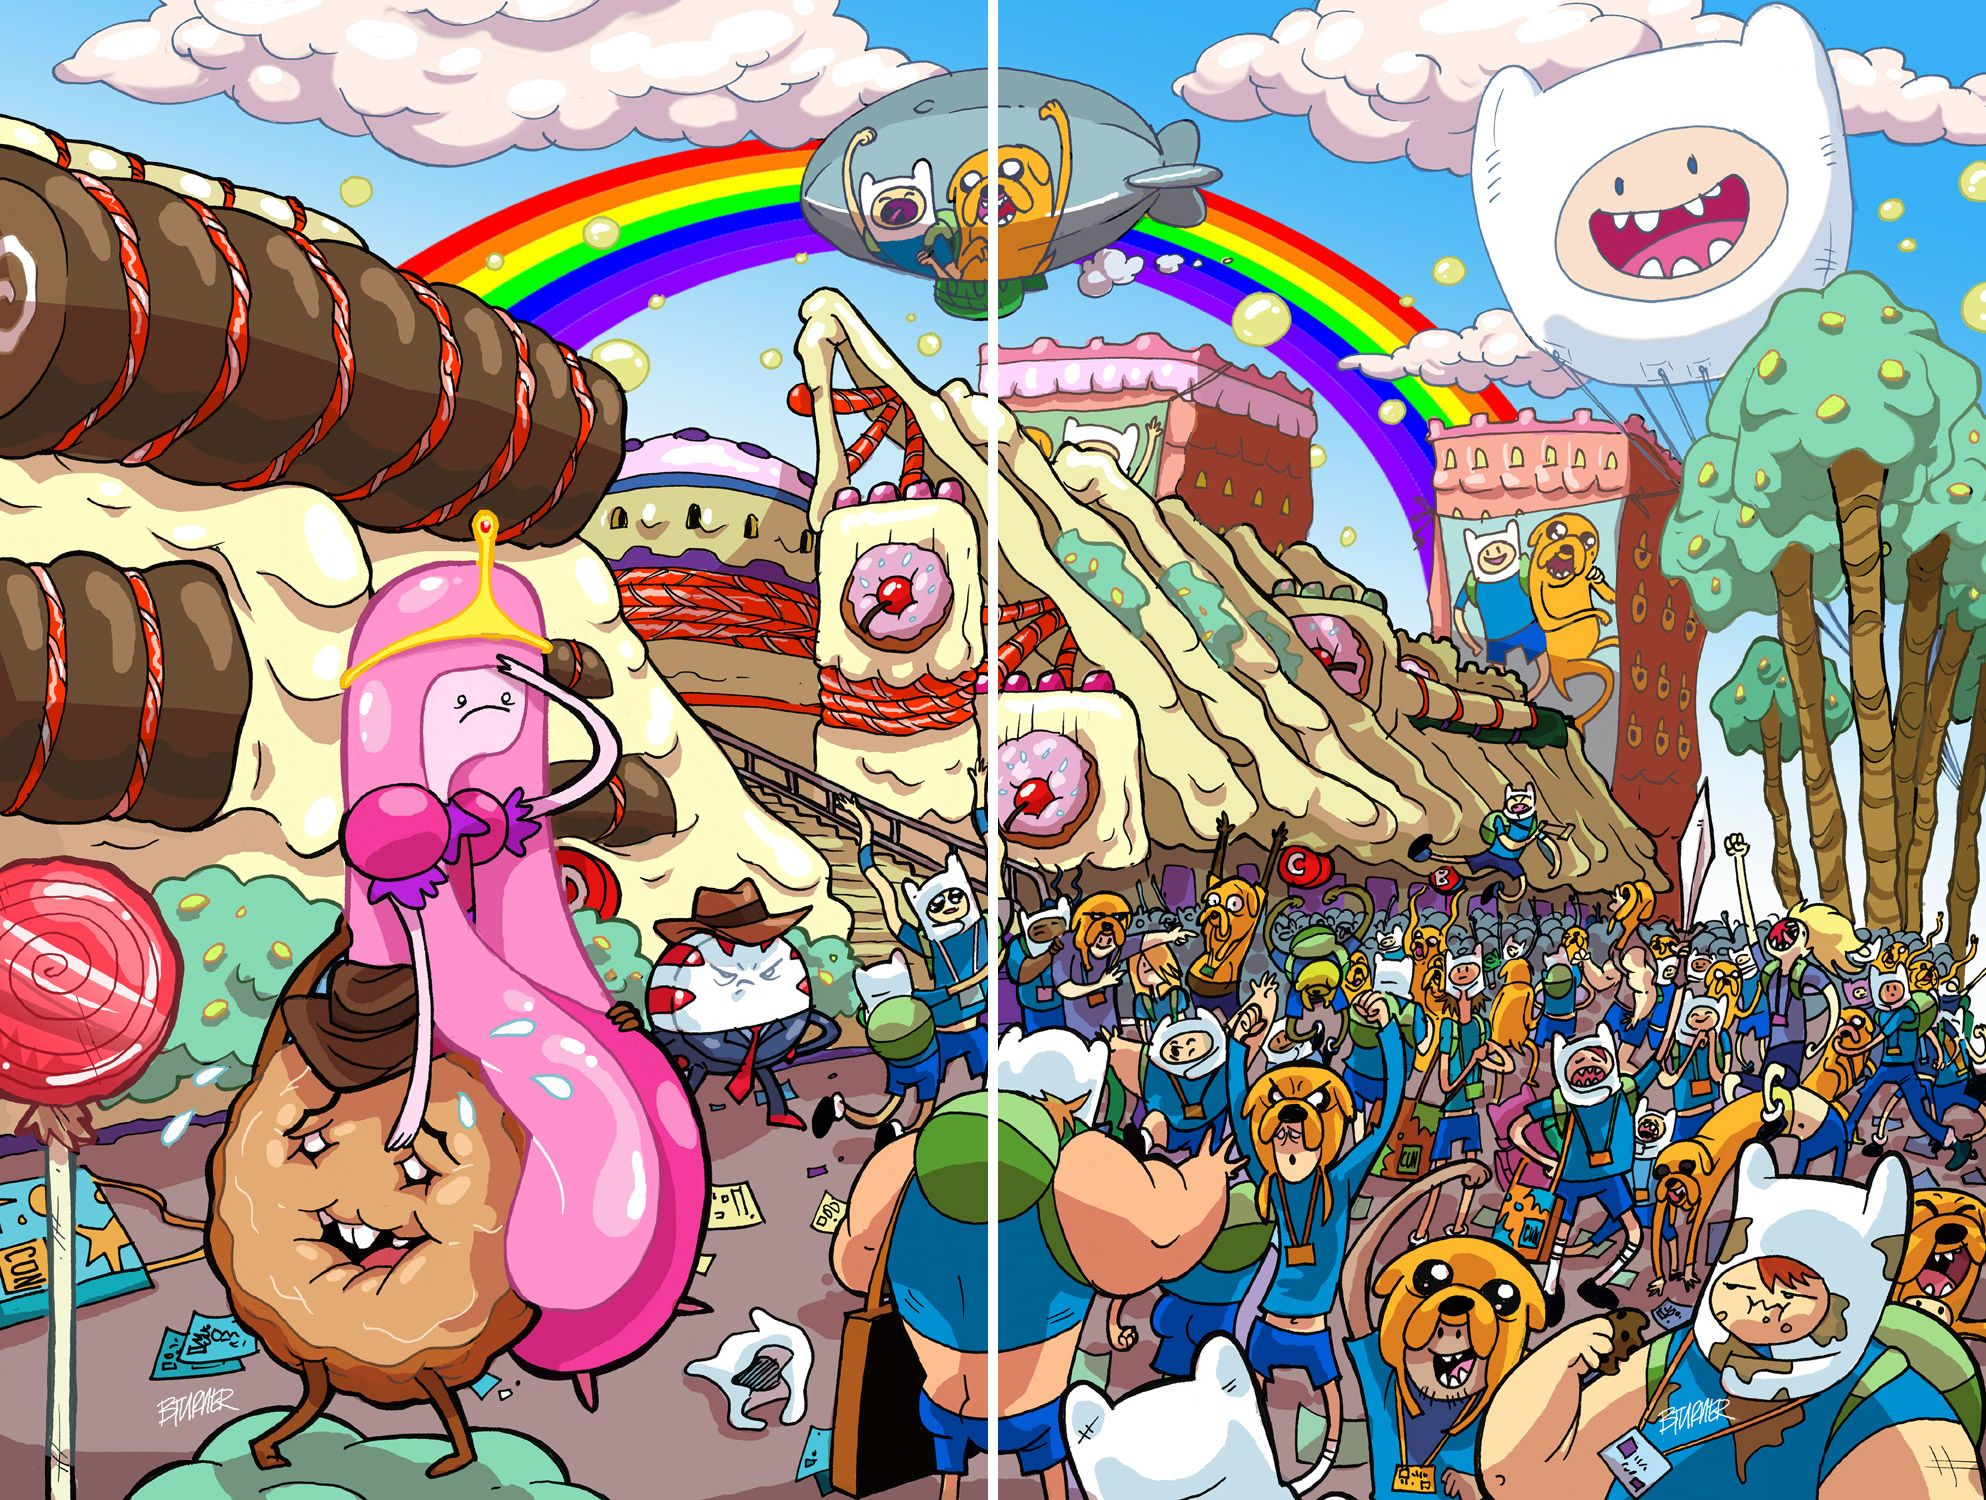 [SDCC 2013 Exclusive] BOOM! Studios - Connecting Covers - Adventure Time: Candy Capers #1 & Adventure Time #18 - $10